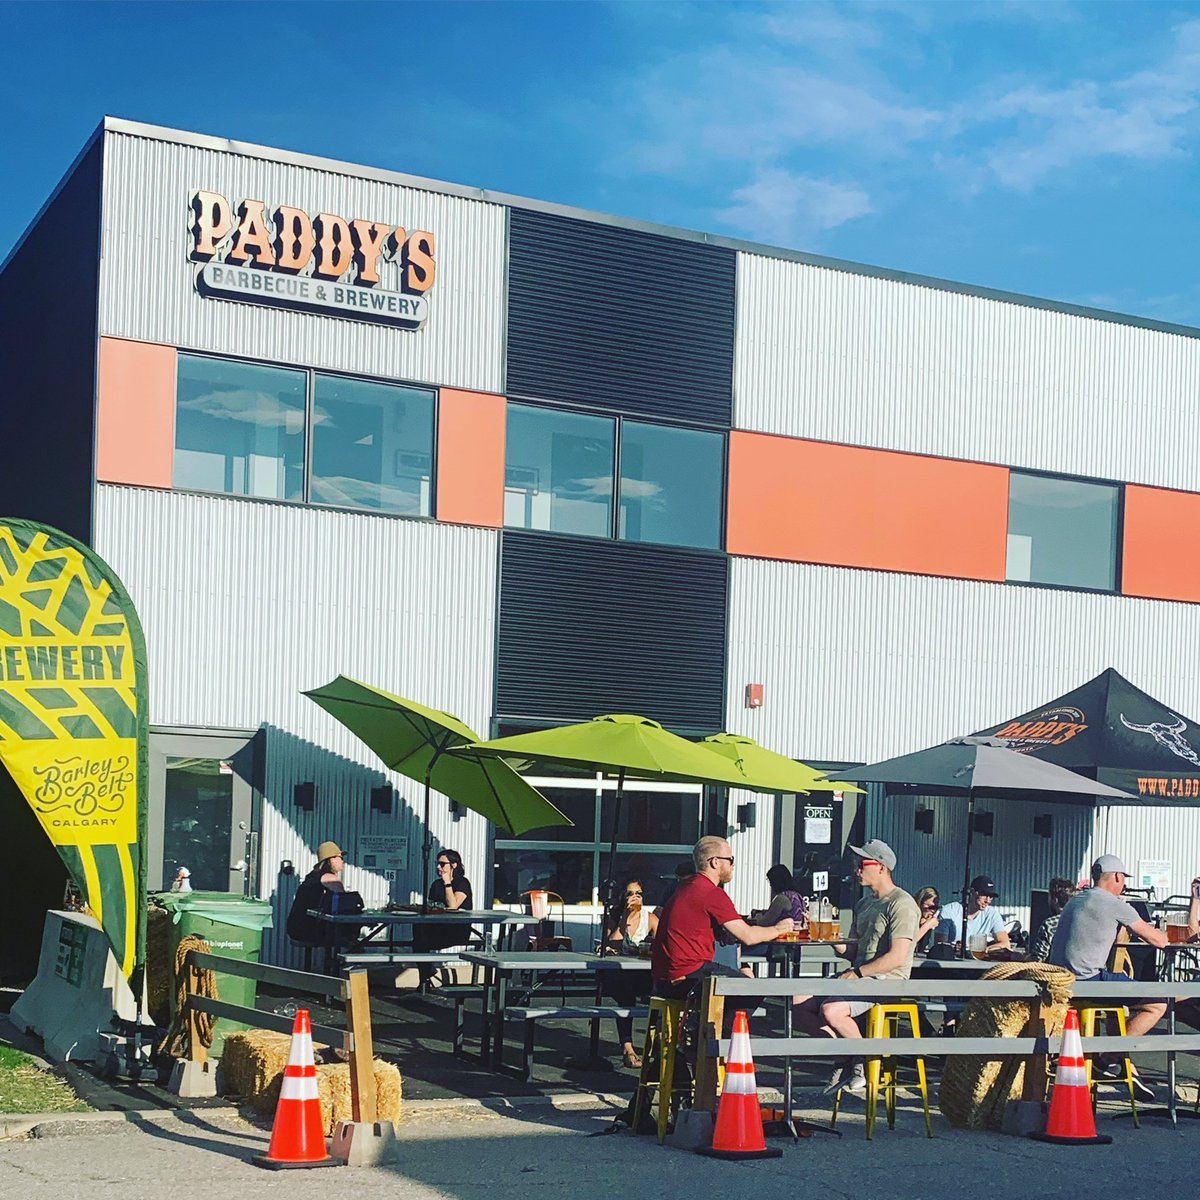 Breakfast is on now 9-11 and all week through to Saturday.  Get your boots on! @cityofcalgary @GlobalCalgary @CBCCalgary @CBCEyeopener @CTVCalgary @CTVdavidspence @gccarra @TourismCalgary @nenshi @yycbeerca  In the @barleybeltyyc https://t.co/0WIEQxcK0X